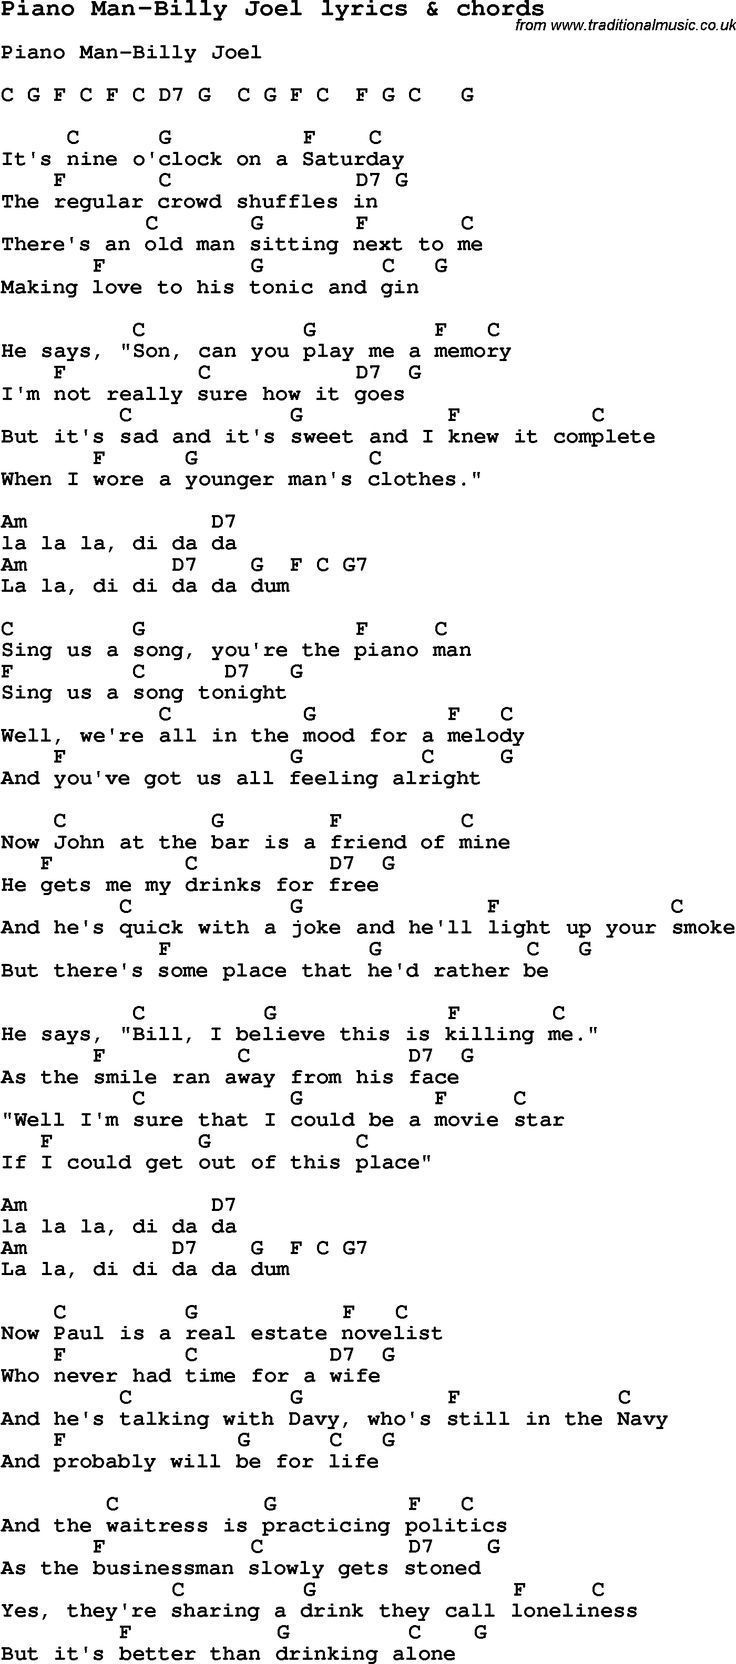 Love song lyrics for piano man billy joel with chords for ukulele love song lyrics for piano whit chords for ukulele guitar banjo etc love song hexwebz Image collections